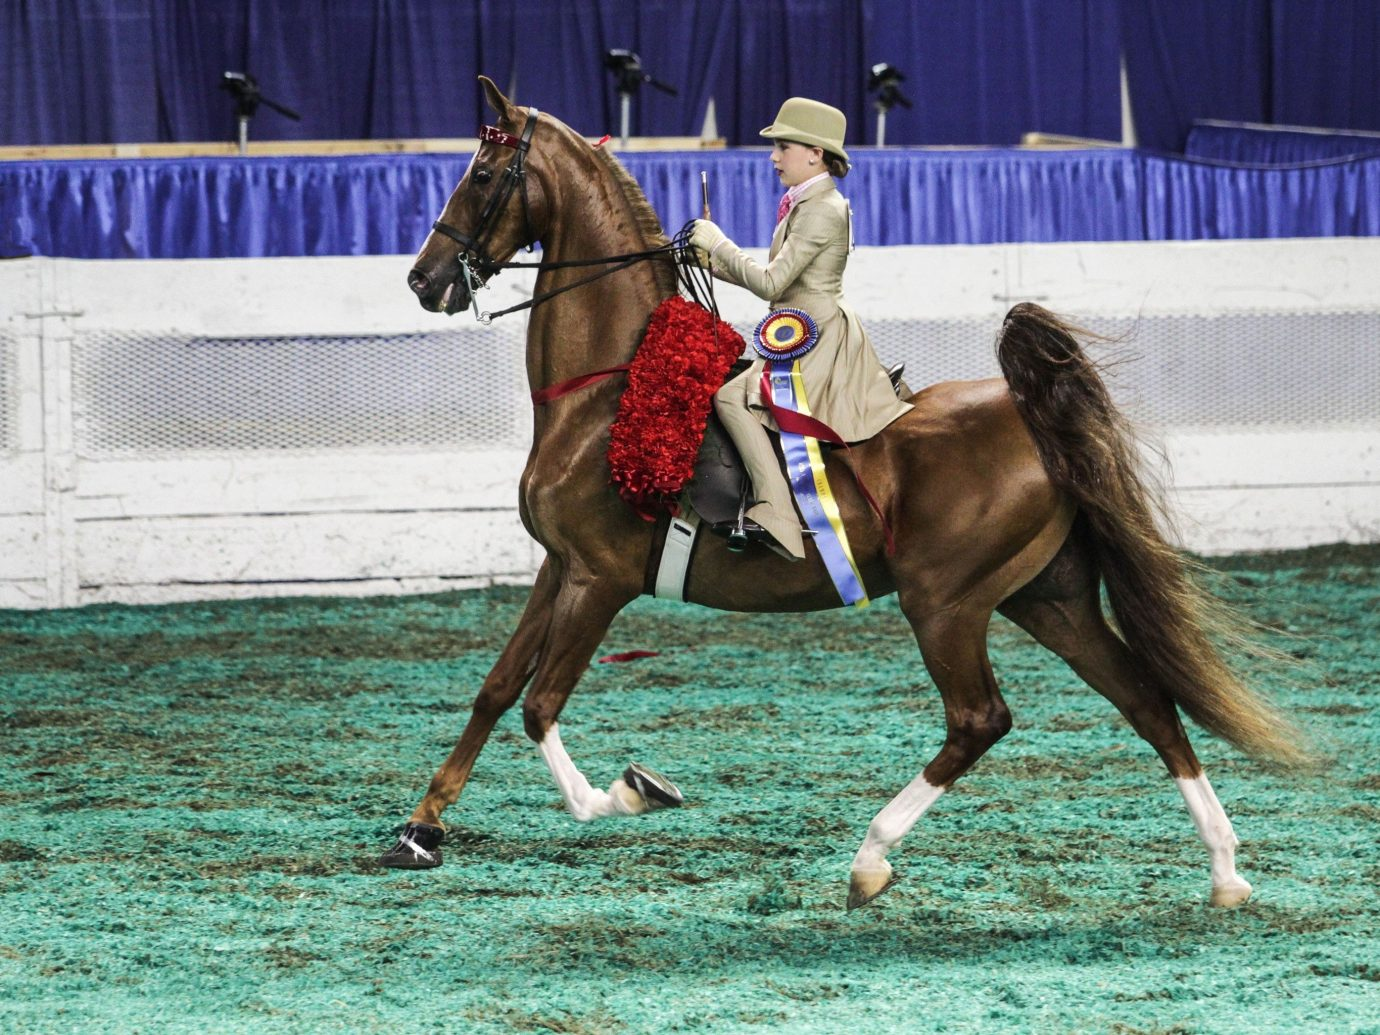 Offbeat horse horse harness outdoor mammal western riding equestrianism english riding animal western pleasure horse like mammal stallion mare sports animal sports jockey equestrian sport barrel racing reining animal training eventing